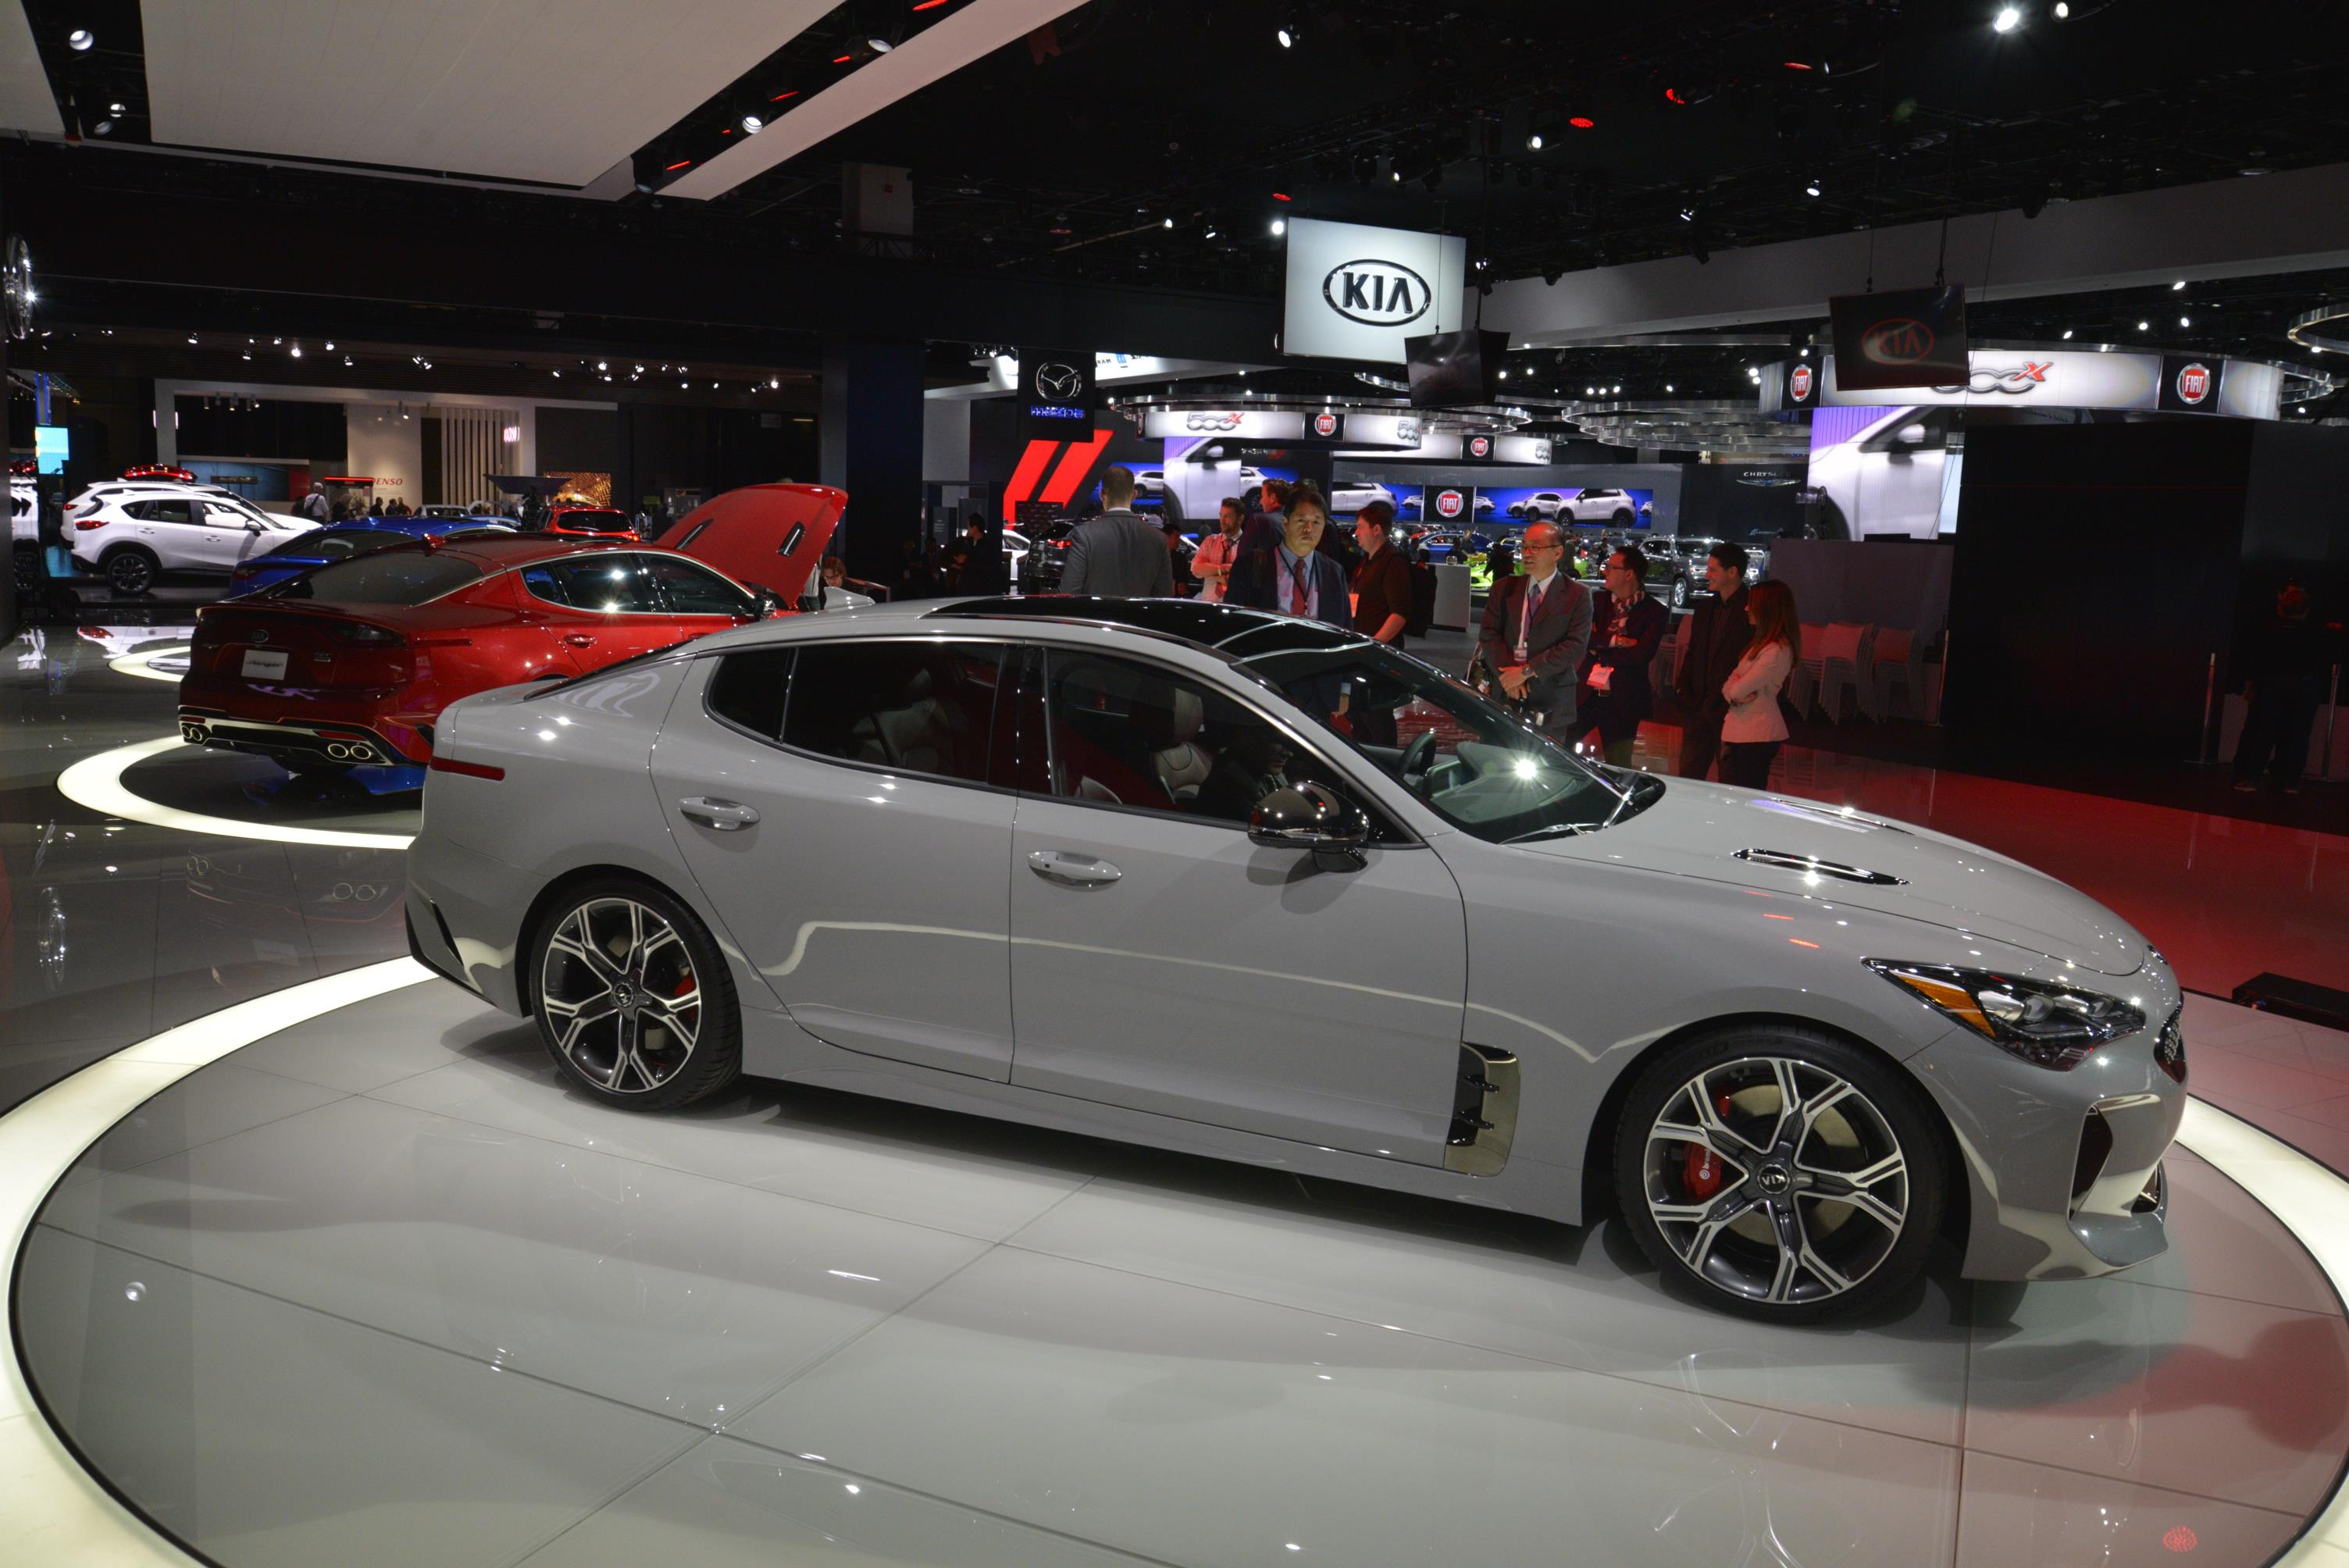 Porsche Usa Build >> 2018 Kia Stinger Looks Like a Porsche Panamera in Nardo ...